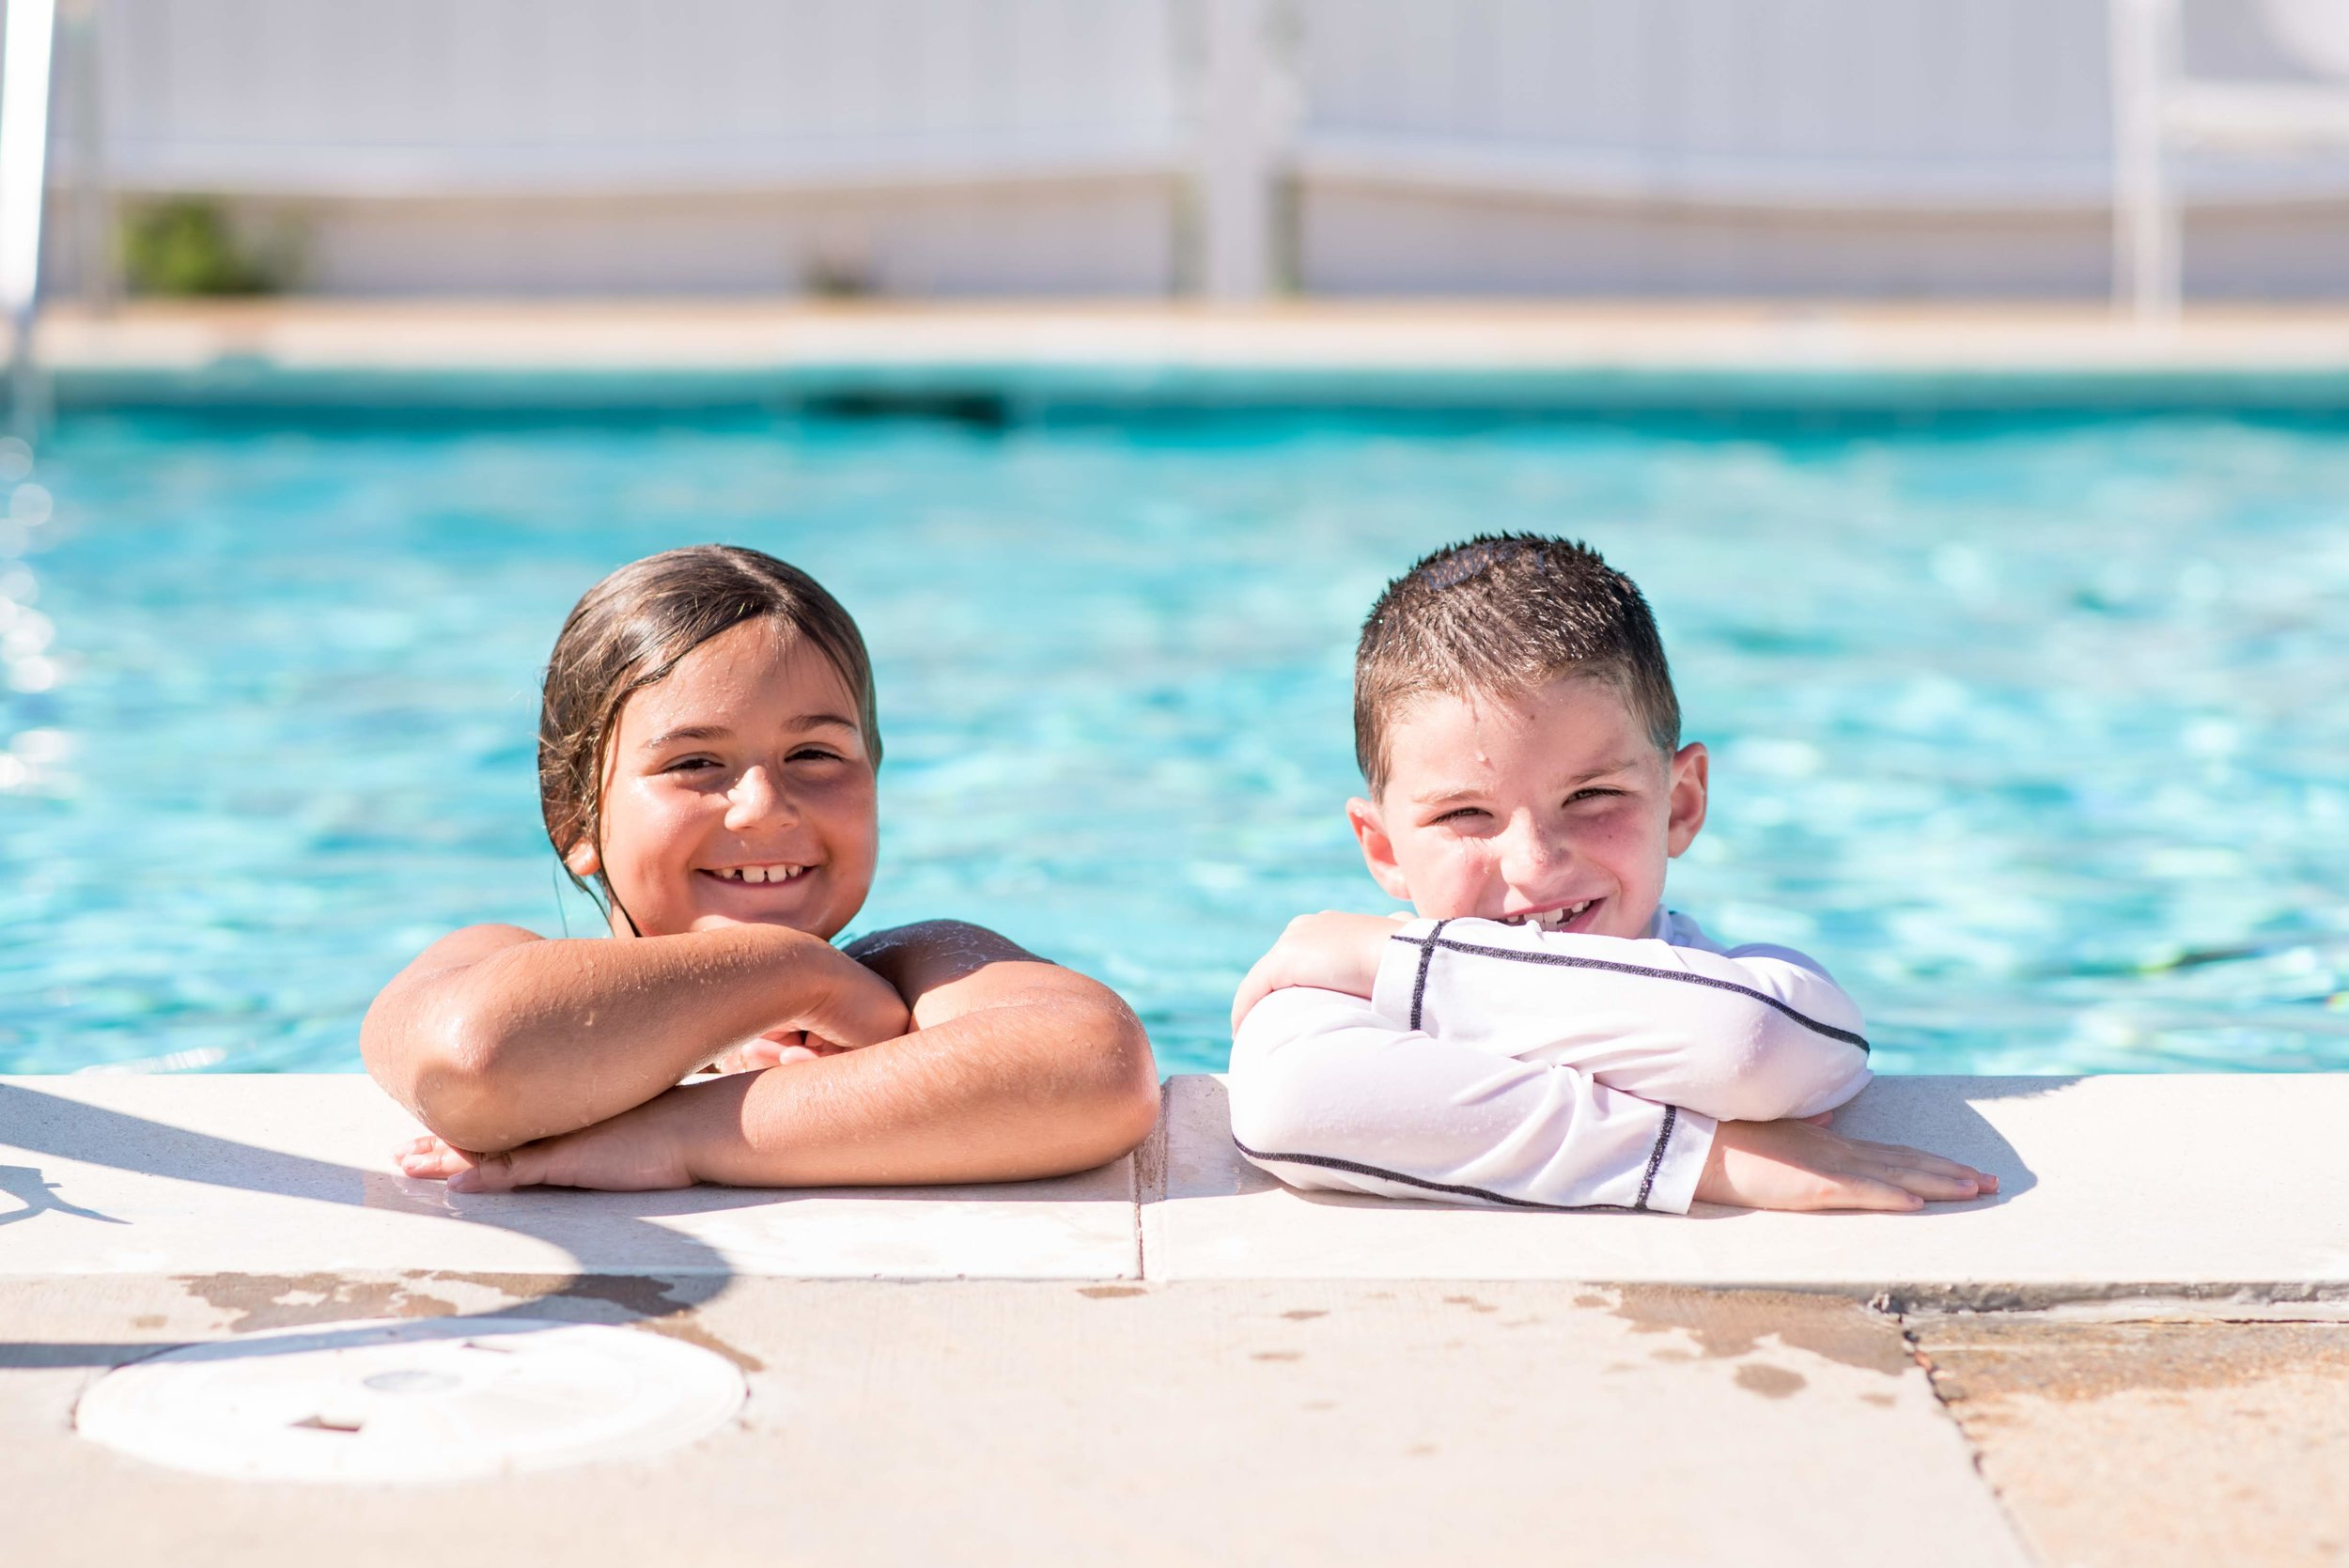 Two campers smiling at the side of the pool.